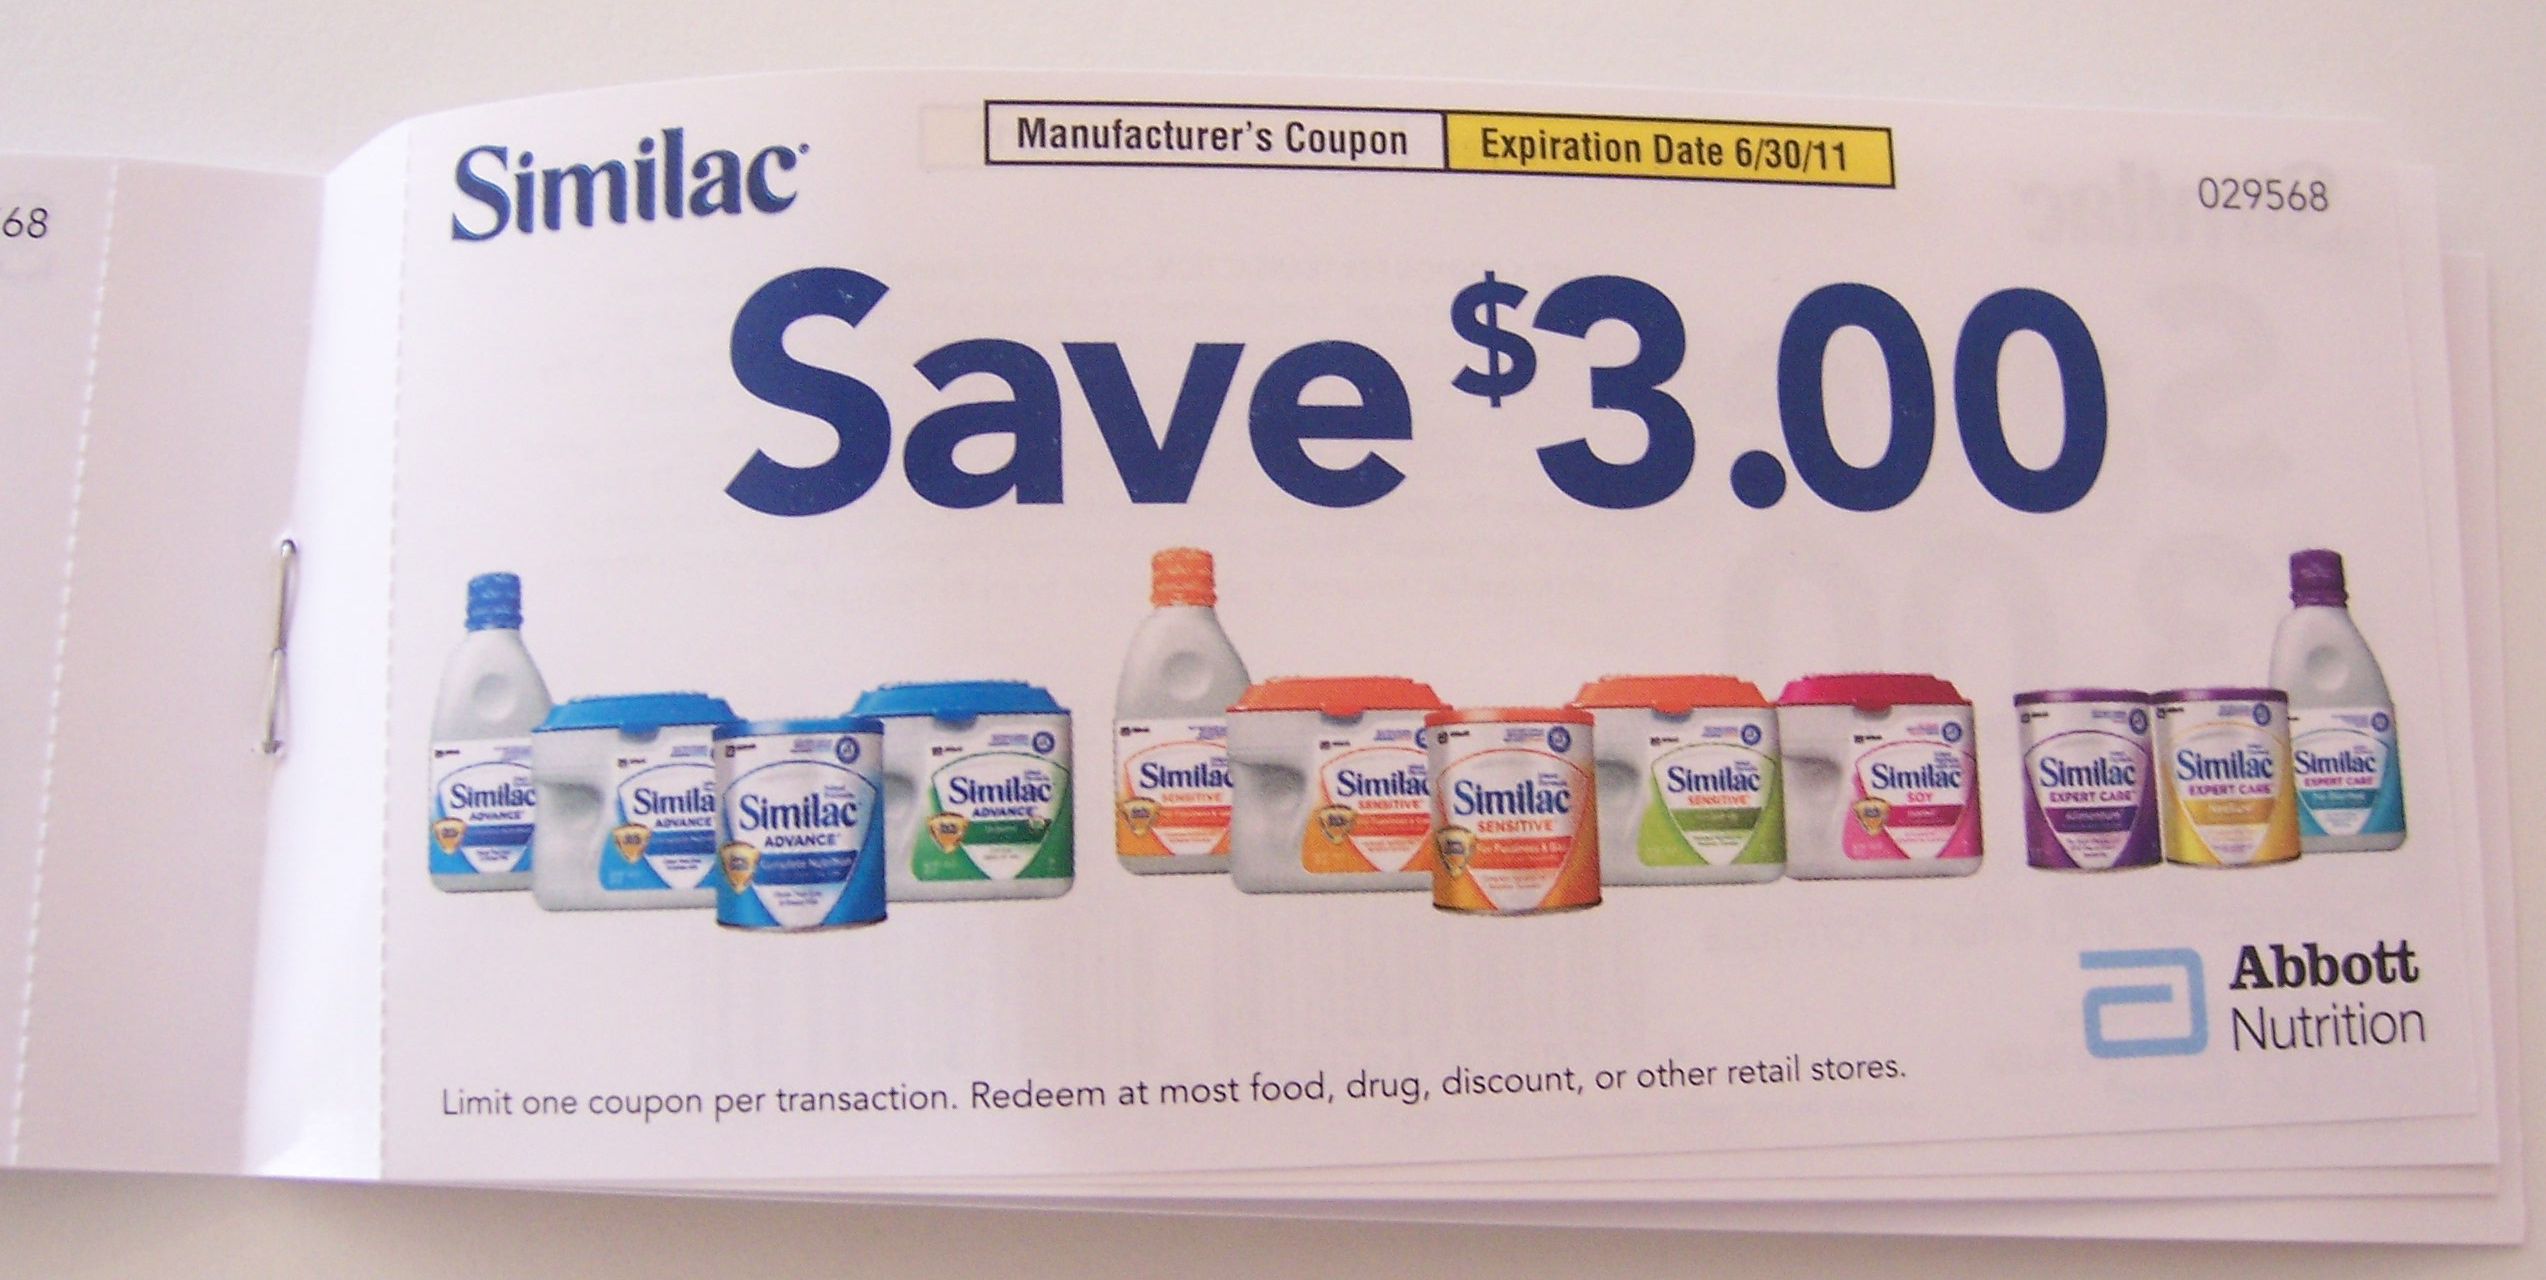 Similac Coupon | Printable Coupons Db 2016 - Free Printable Similac Baby Formula Coupons